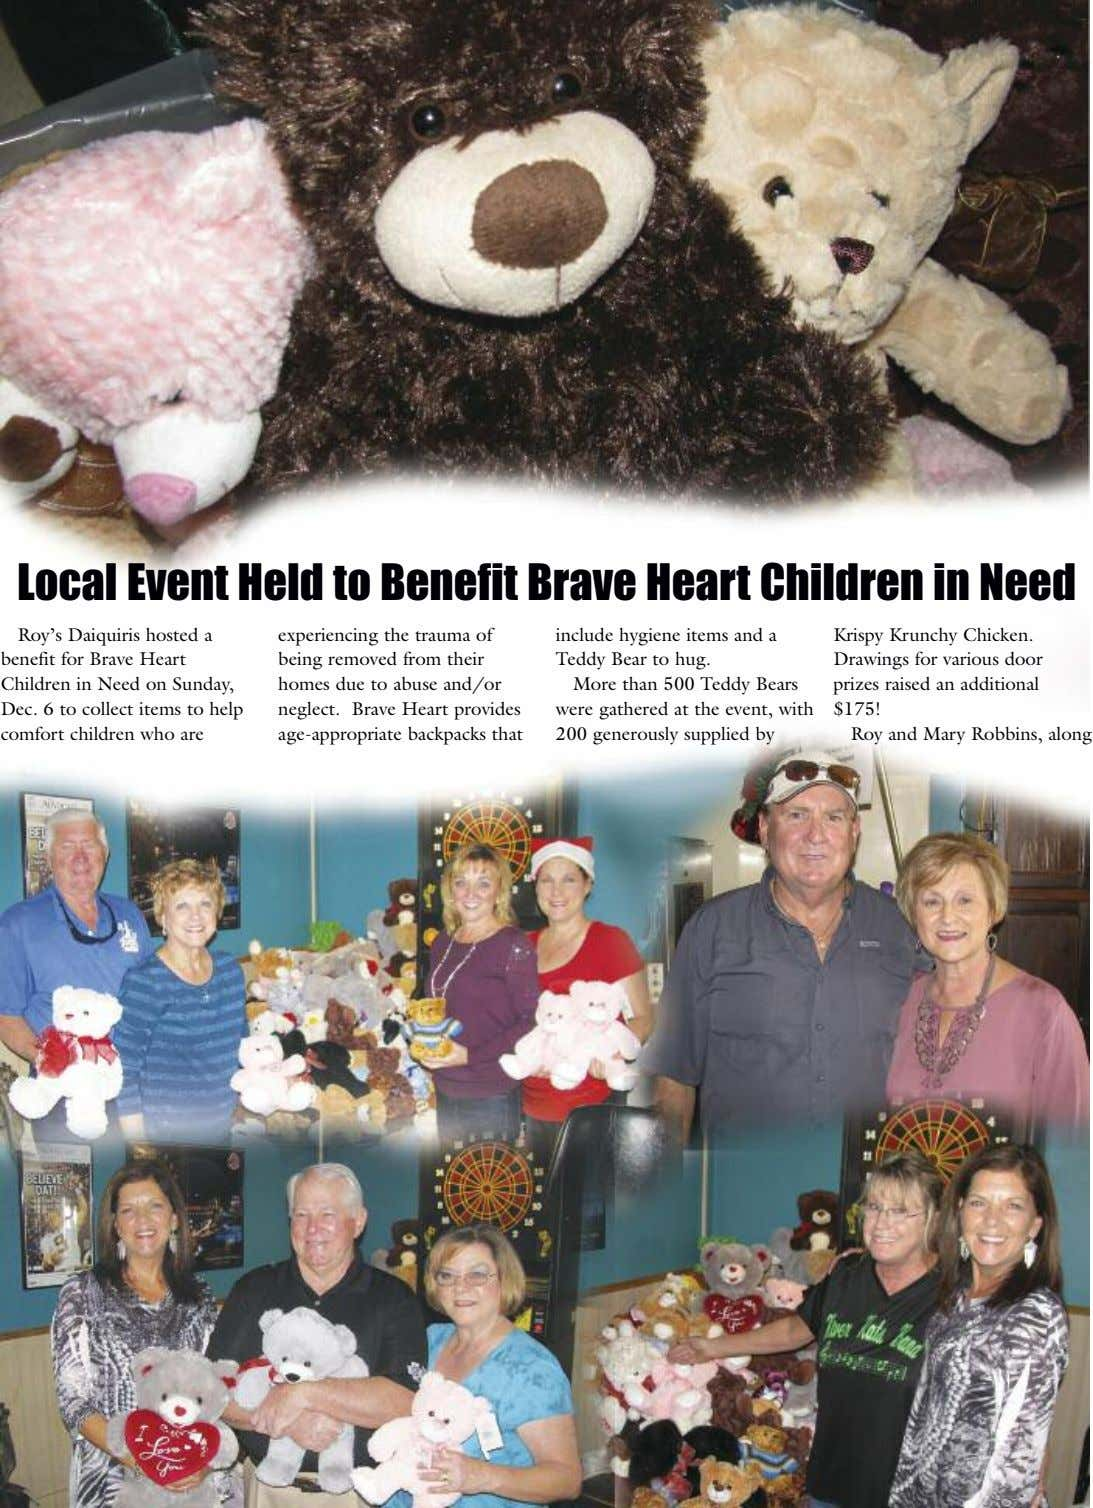 Local Event Held to Benefit Brave Heart Children in Need Roy's Daiquiris hosted a benefit